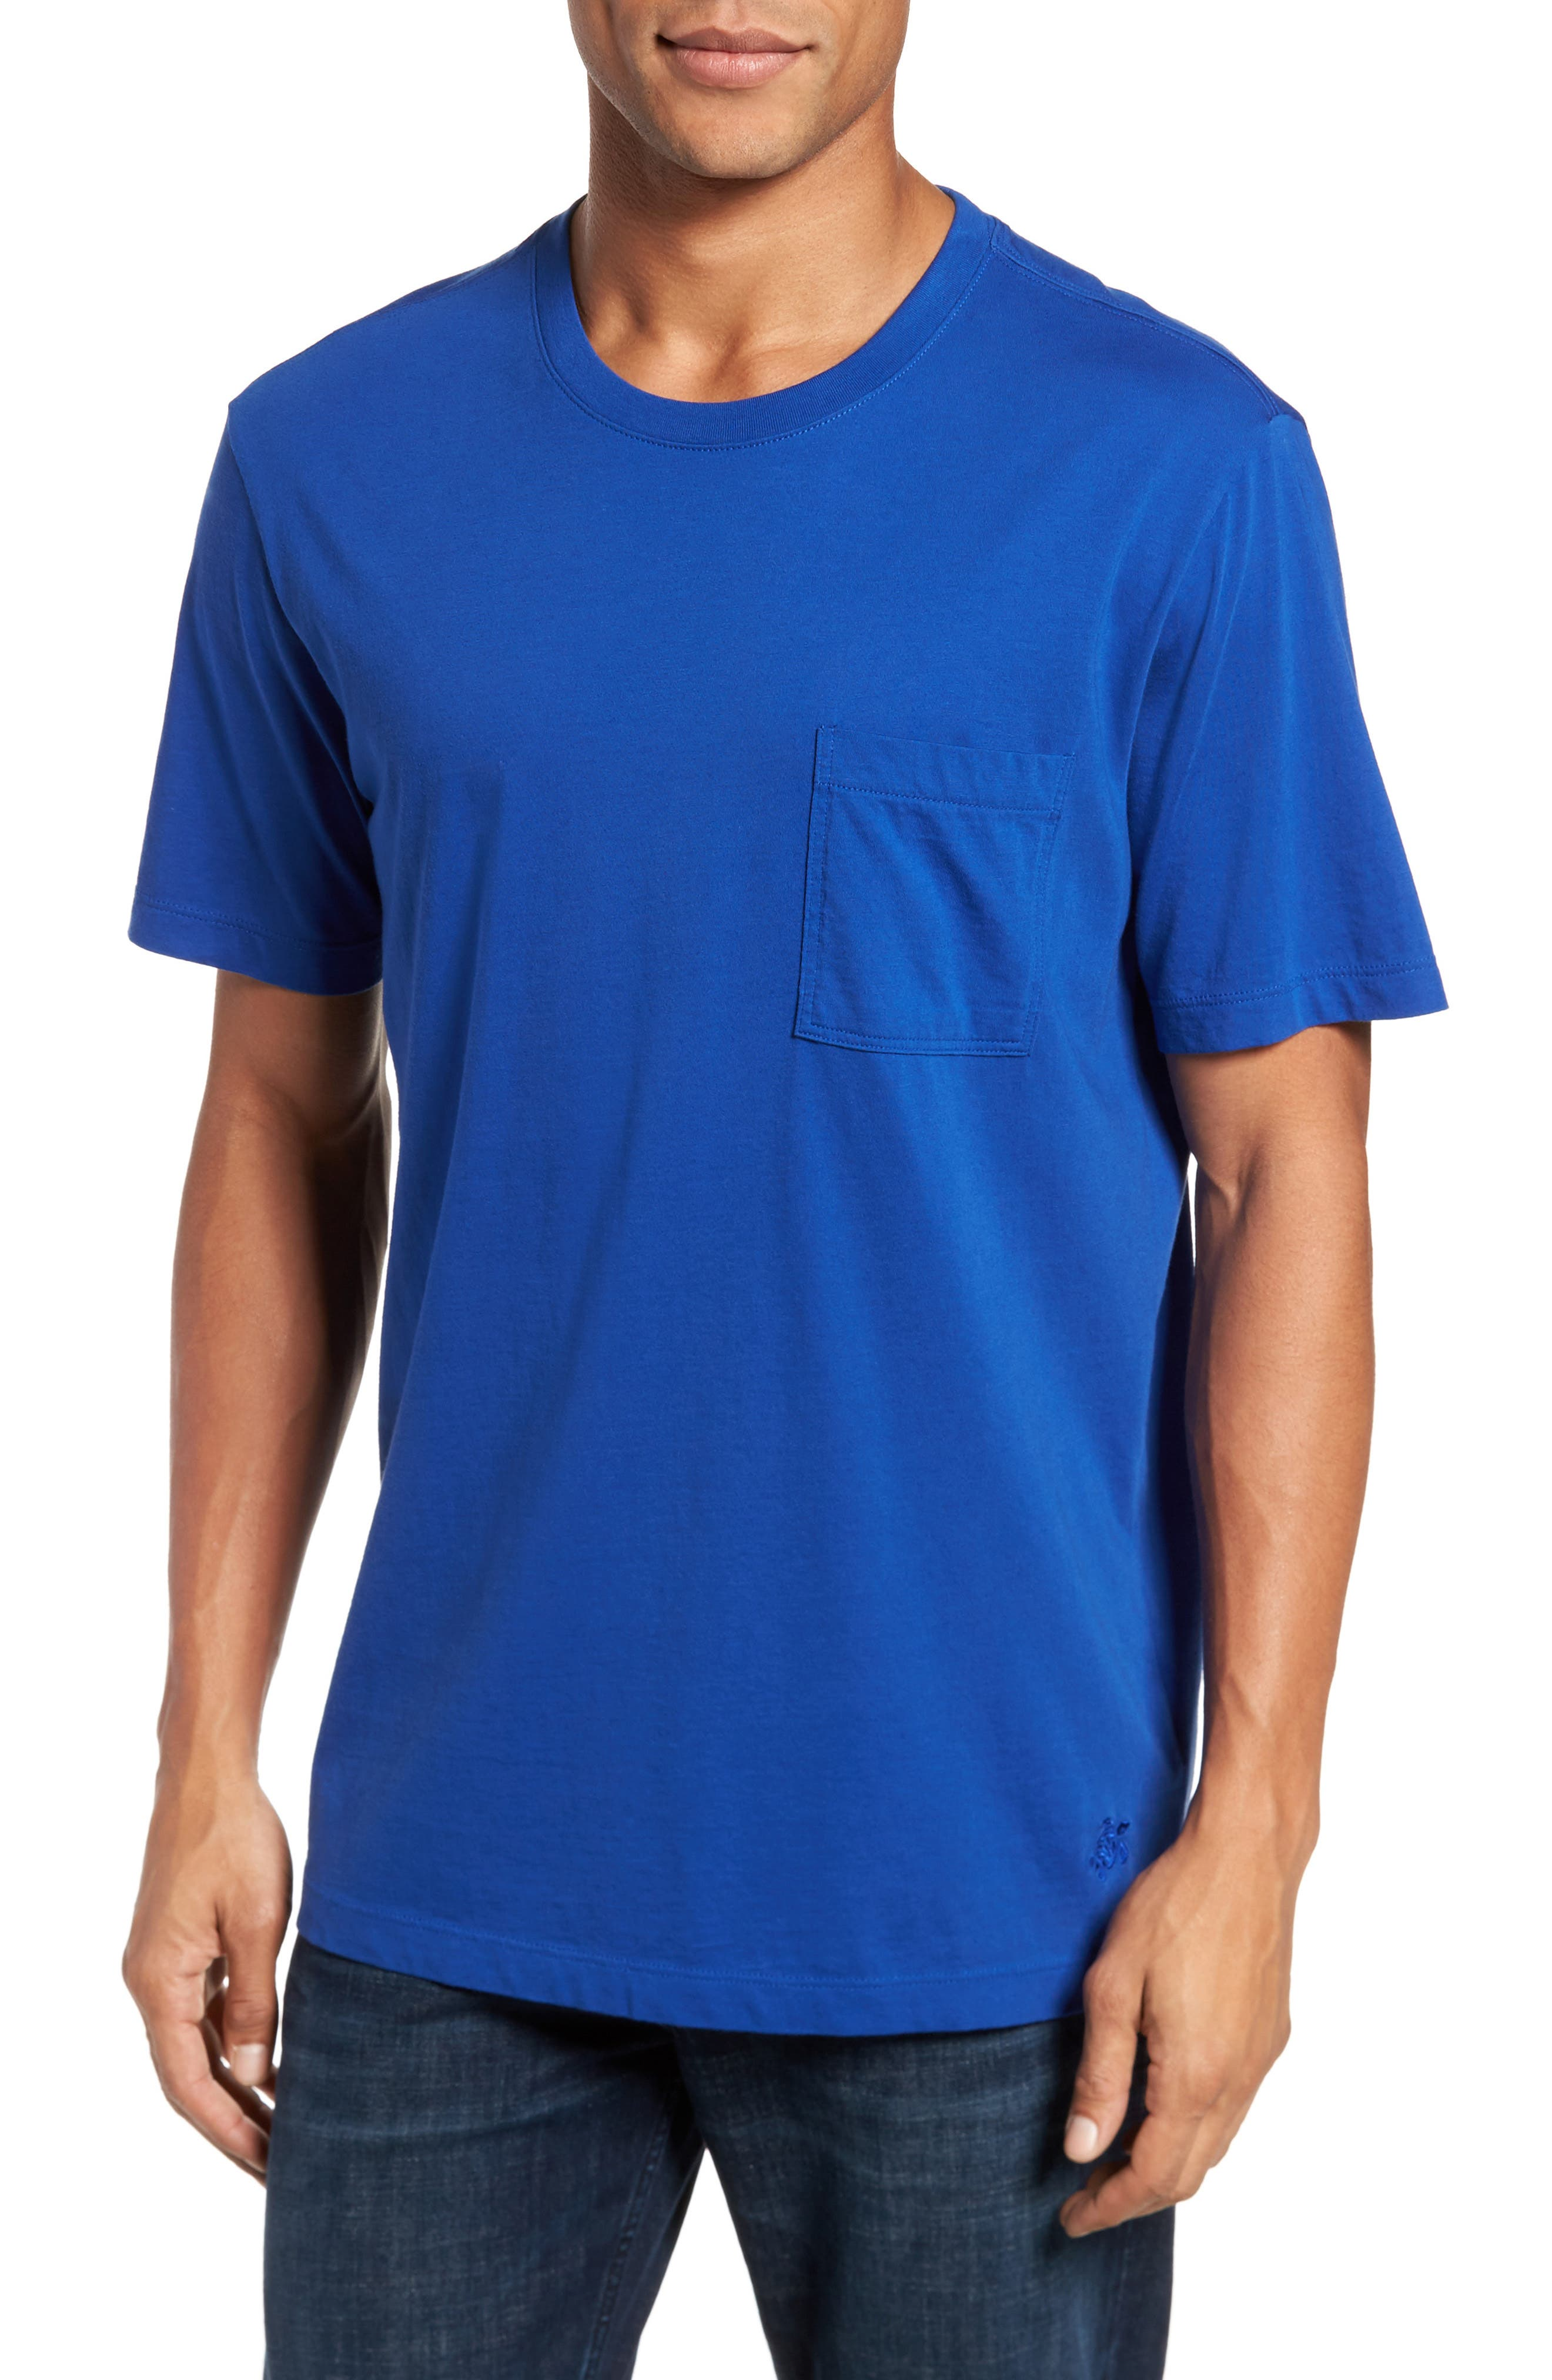 Alternate Image 1 Selected - Vilebrequin Classic Fit Pocket T-Shirt